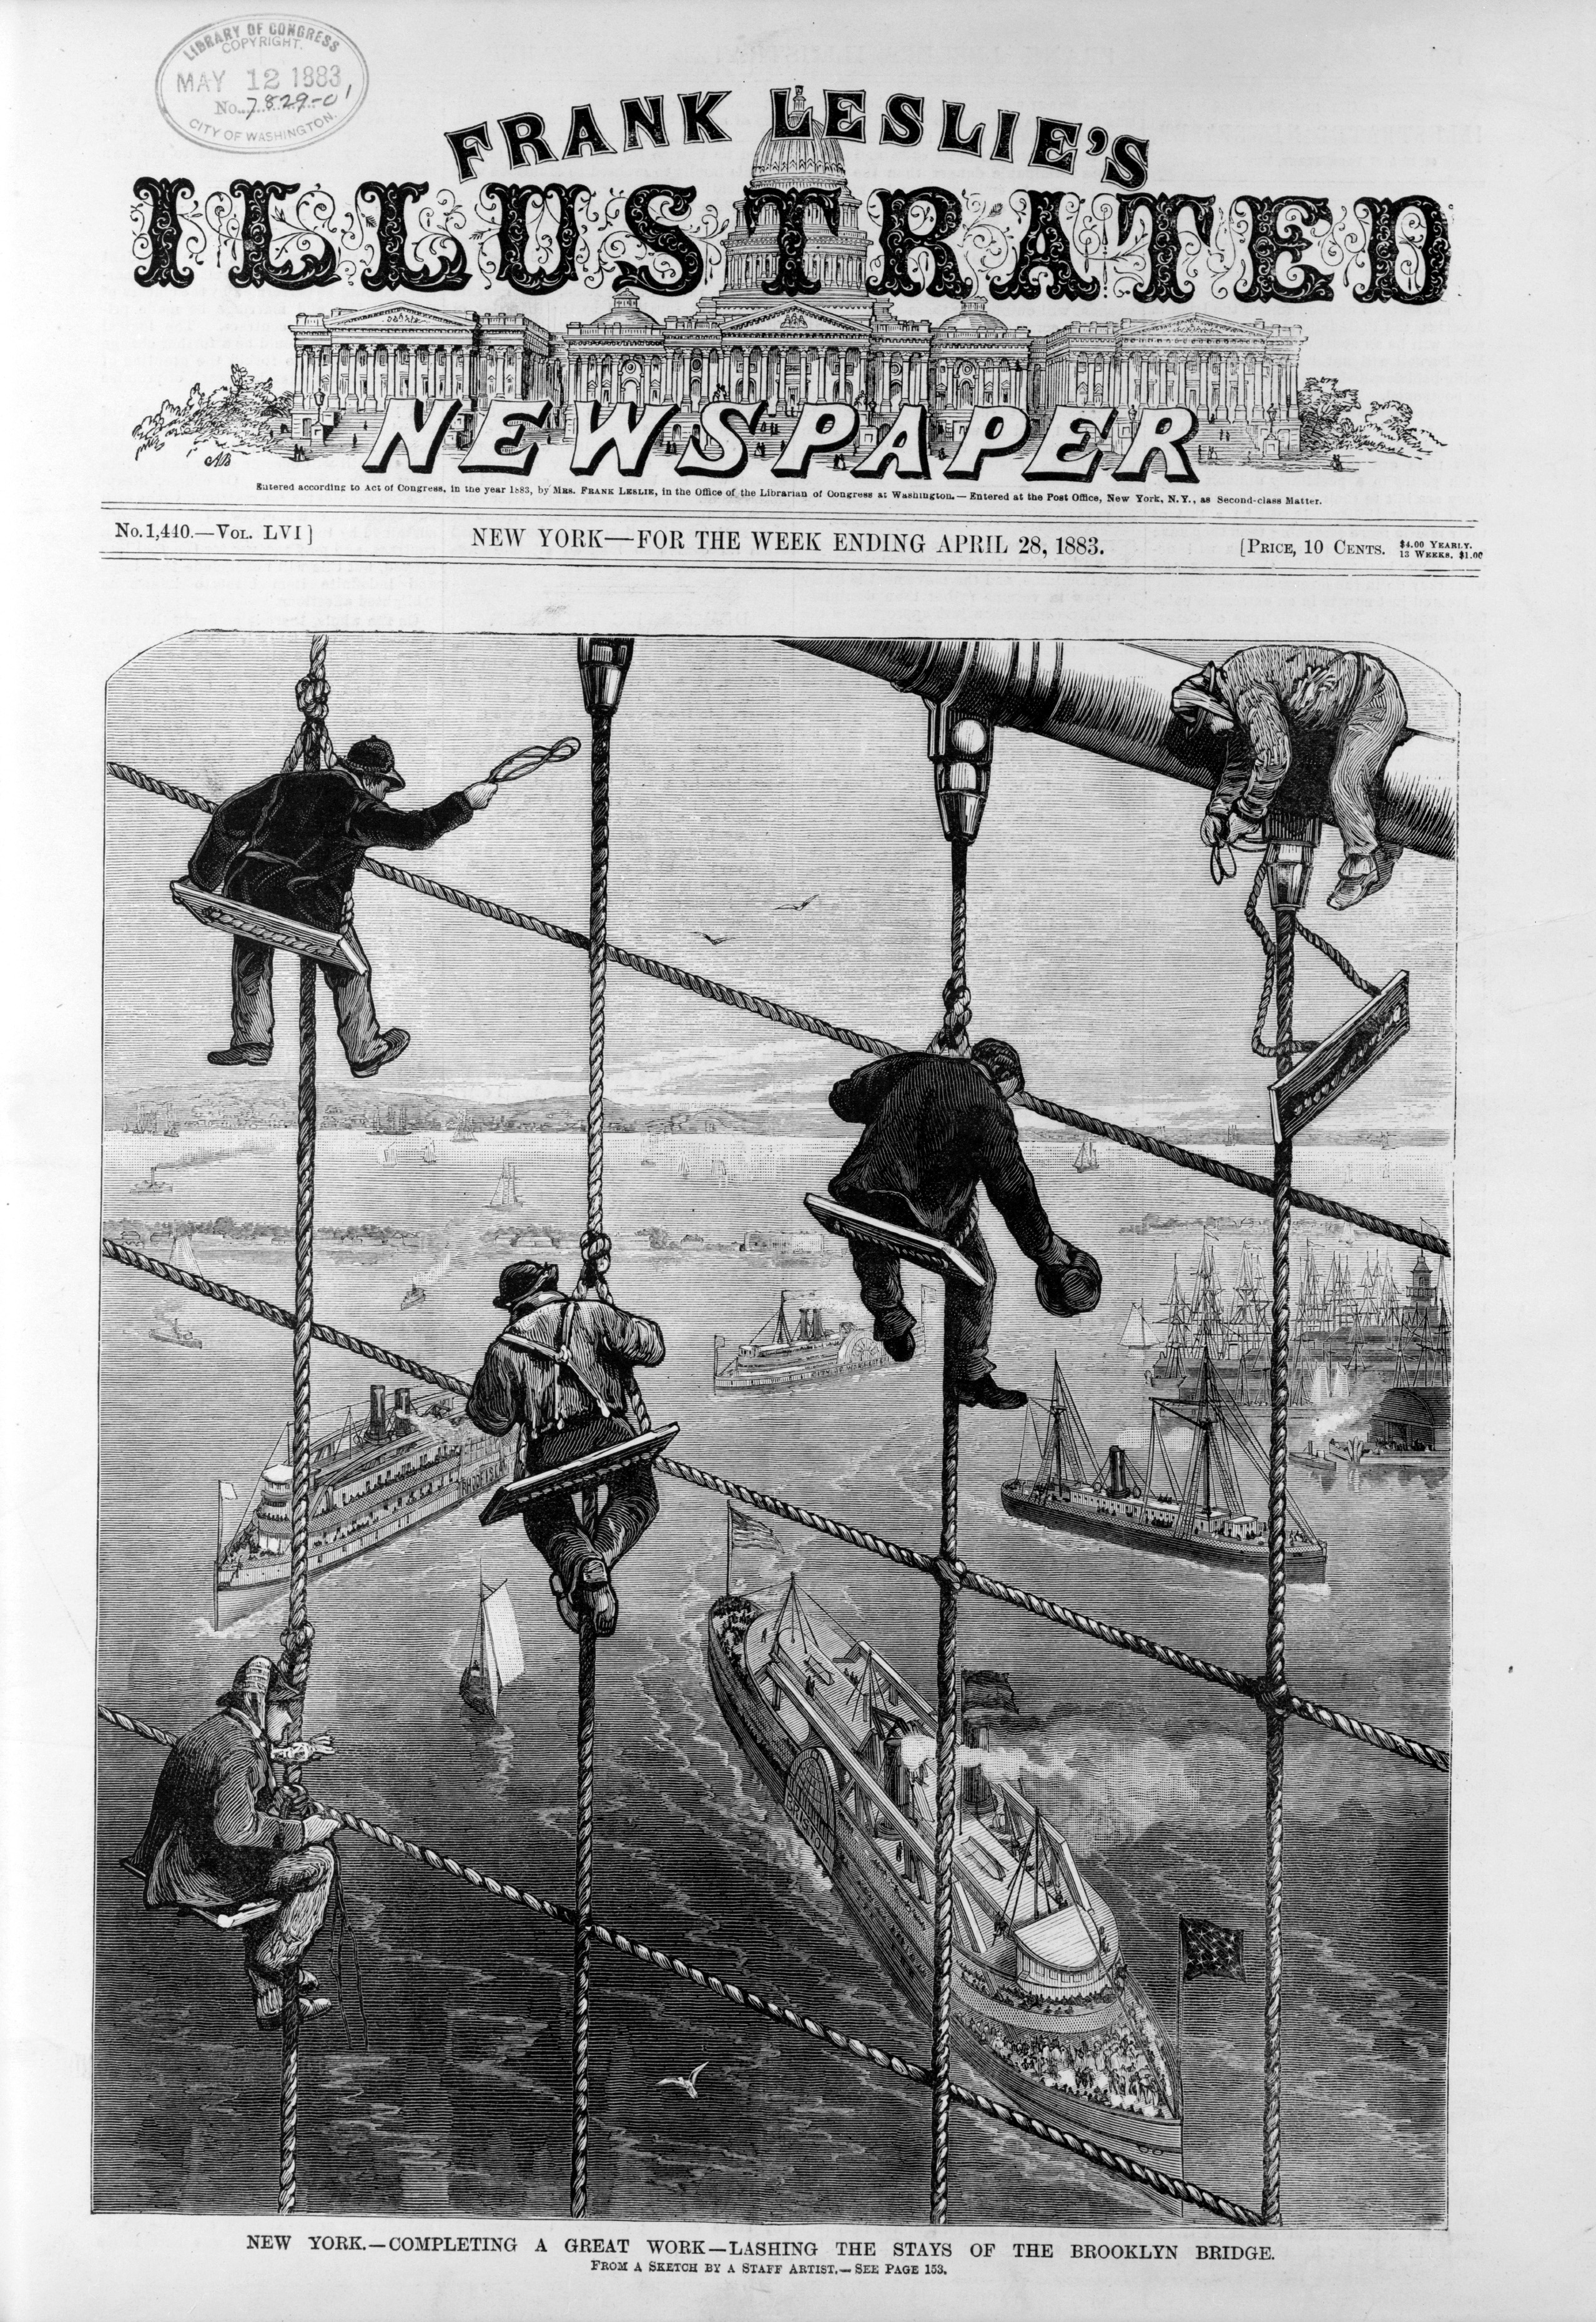 1883_Frank_Leslie's_Illustrated_Newspaper_Brooklyn_Bridge_New_York_City